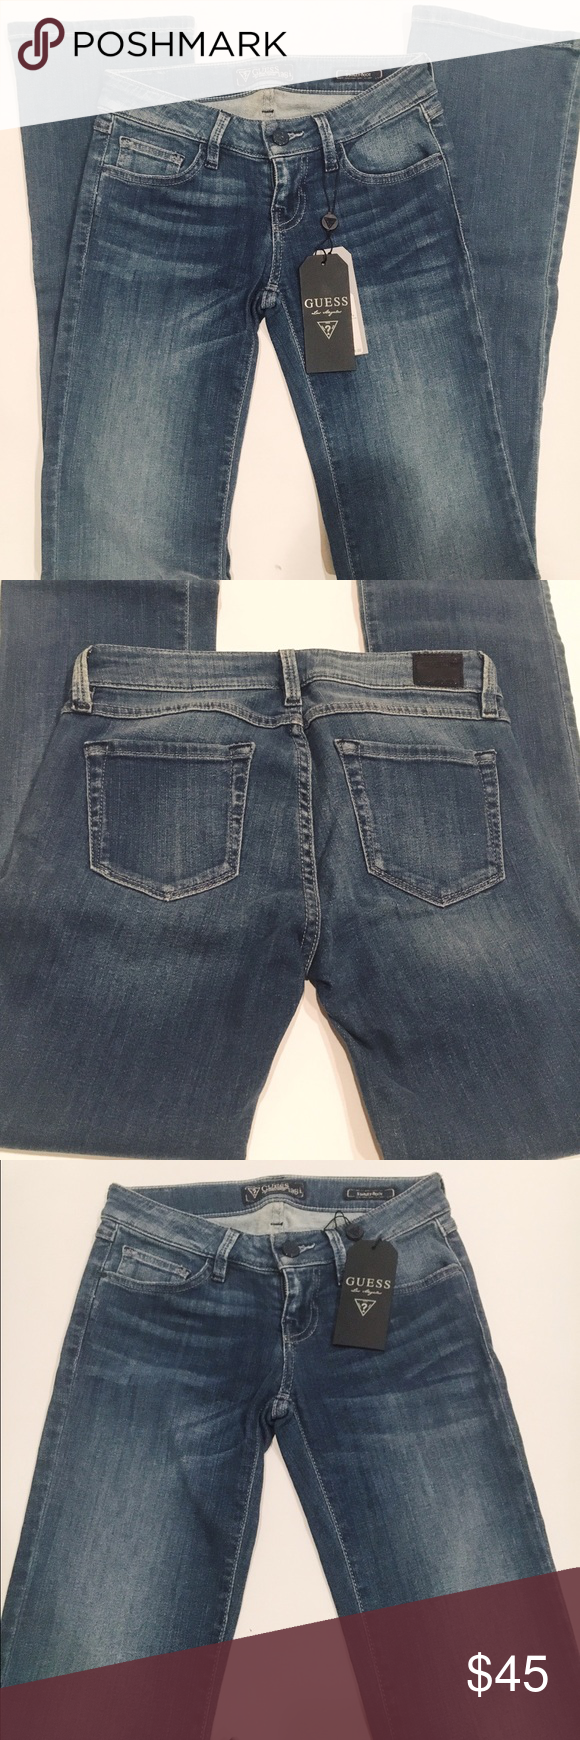 """Guess Slim Fit Denim Boot Cut Jeans Dream Catcher Wash. Size 25 with 32"""" inseam. New with tags. Guess Jeans Boot Cut"""